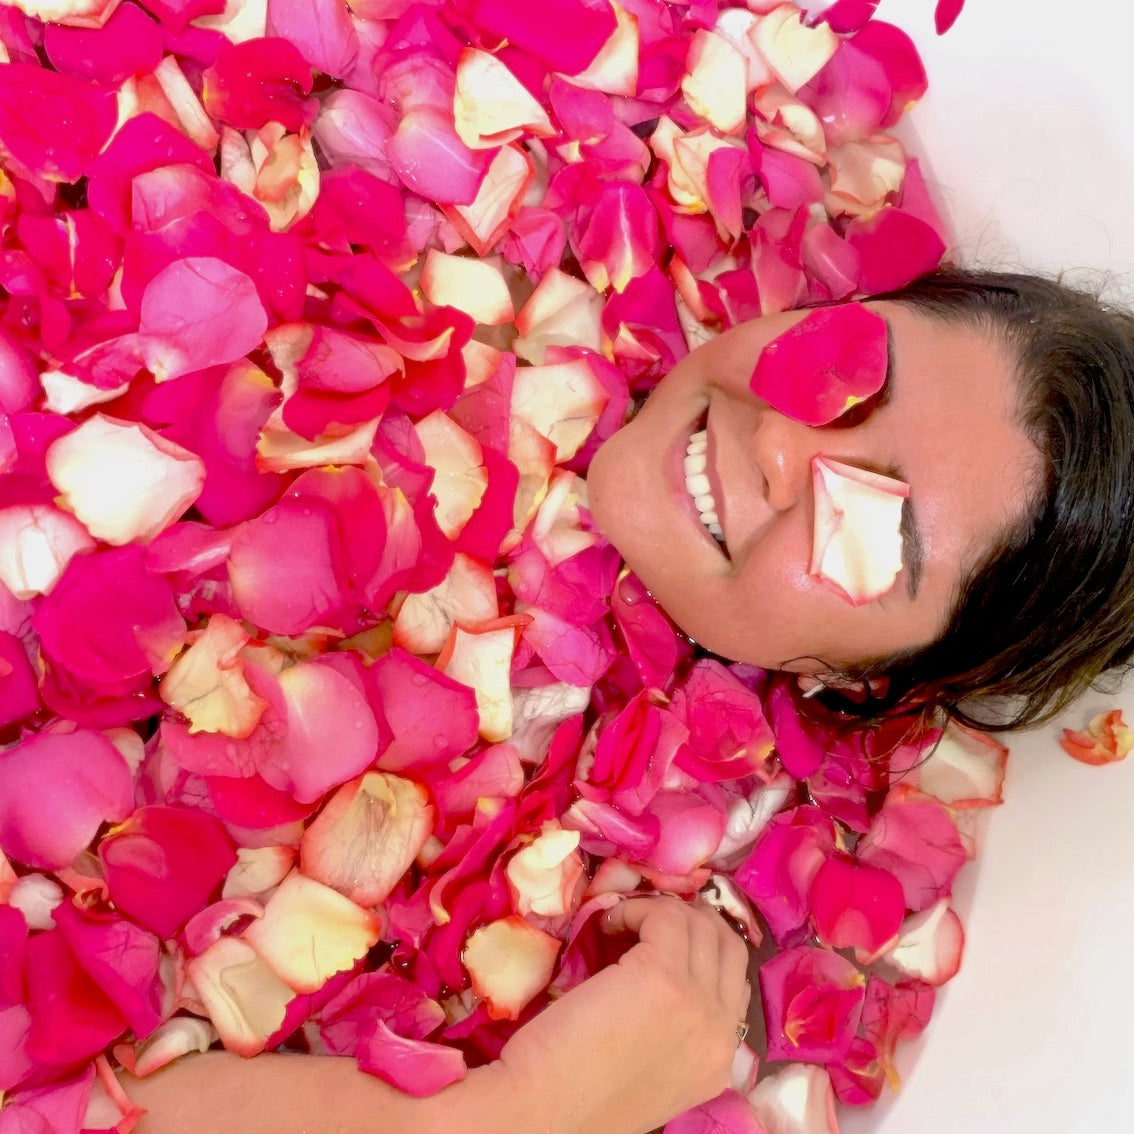 Load image into Gallery viewer, A girl in a bathtub of flower petals, enjoying the floral flavor of sleep